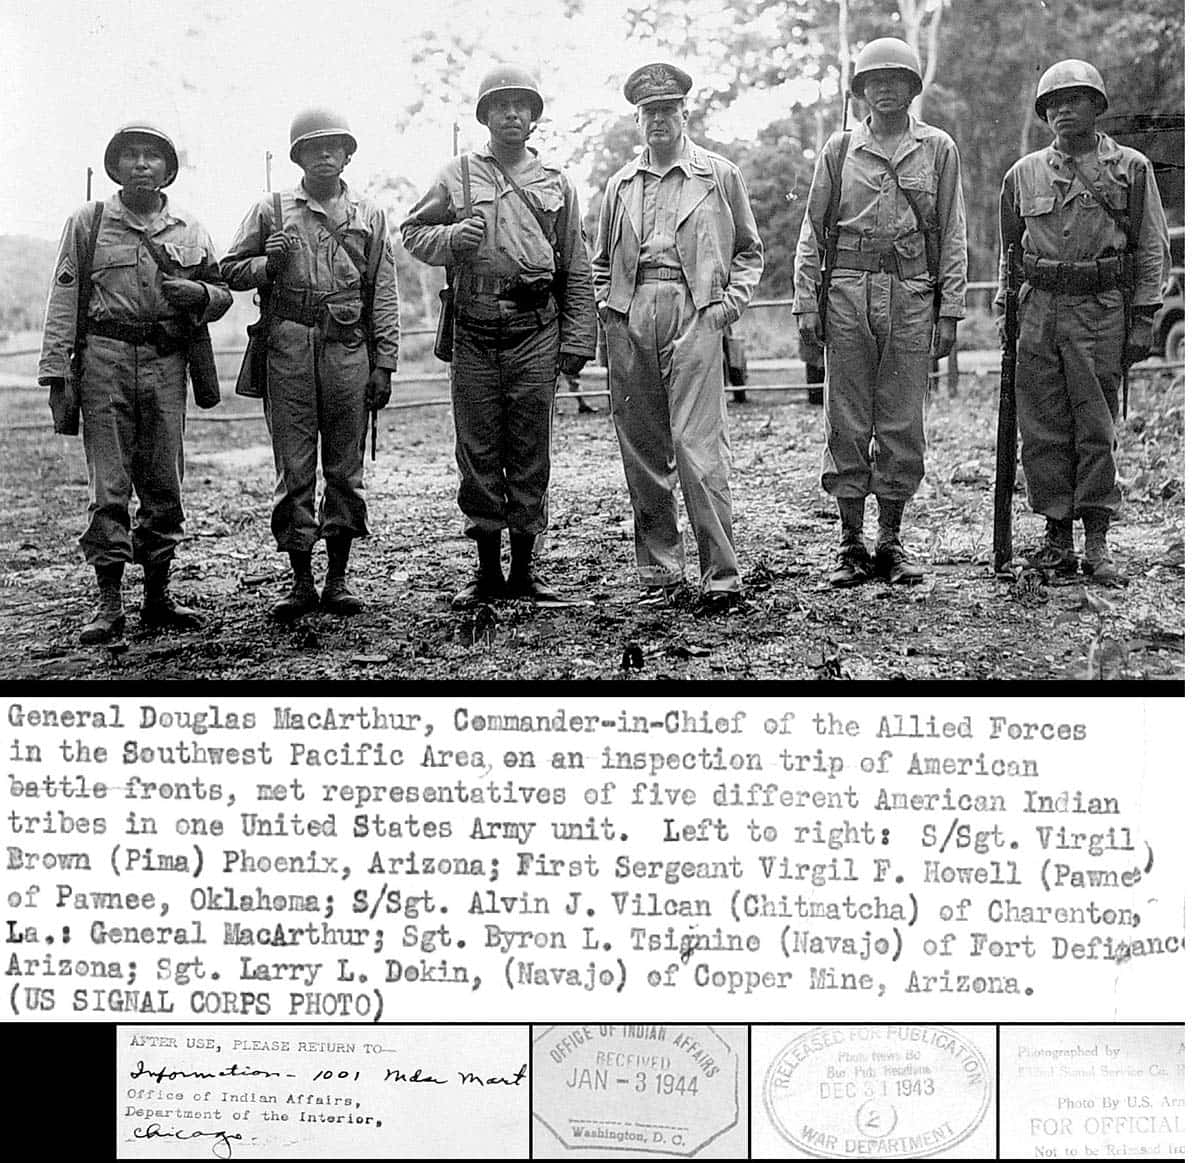 General douglas macarthur meets american indian troops wwii military pacific navajo pima island hopping